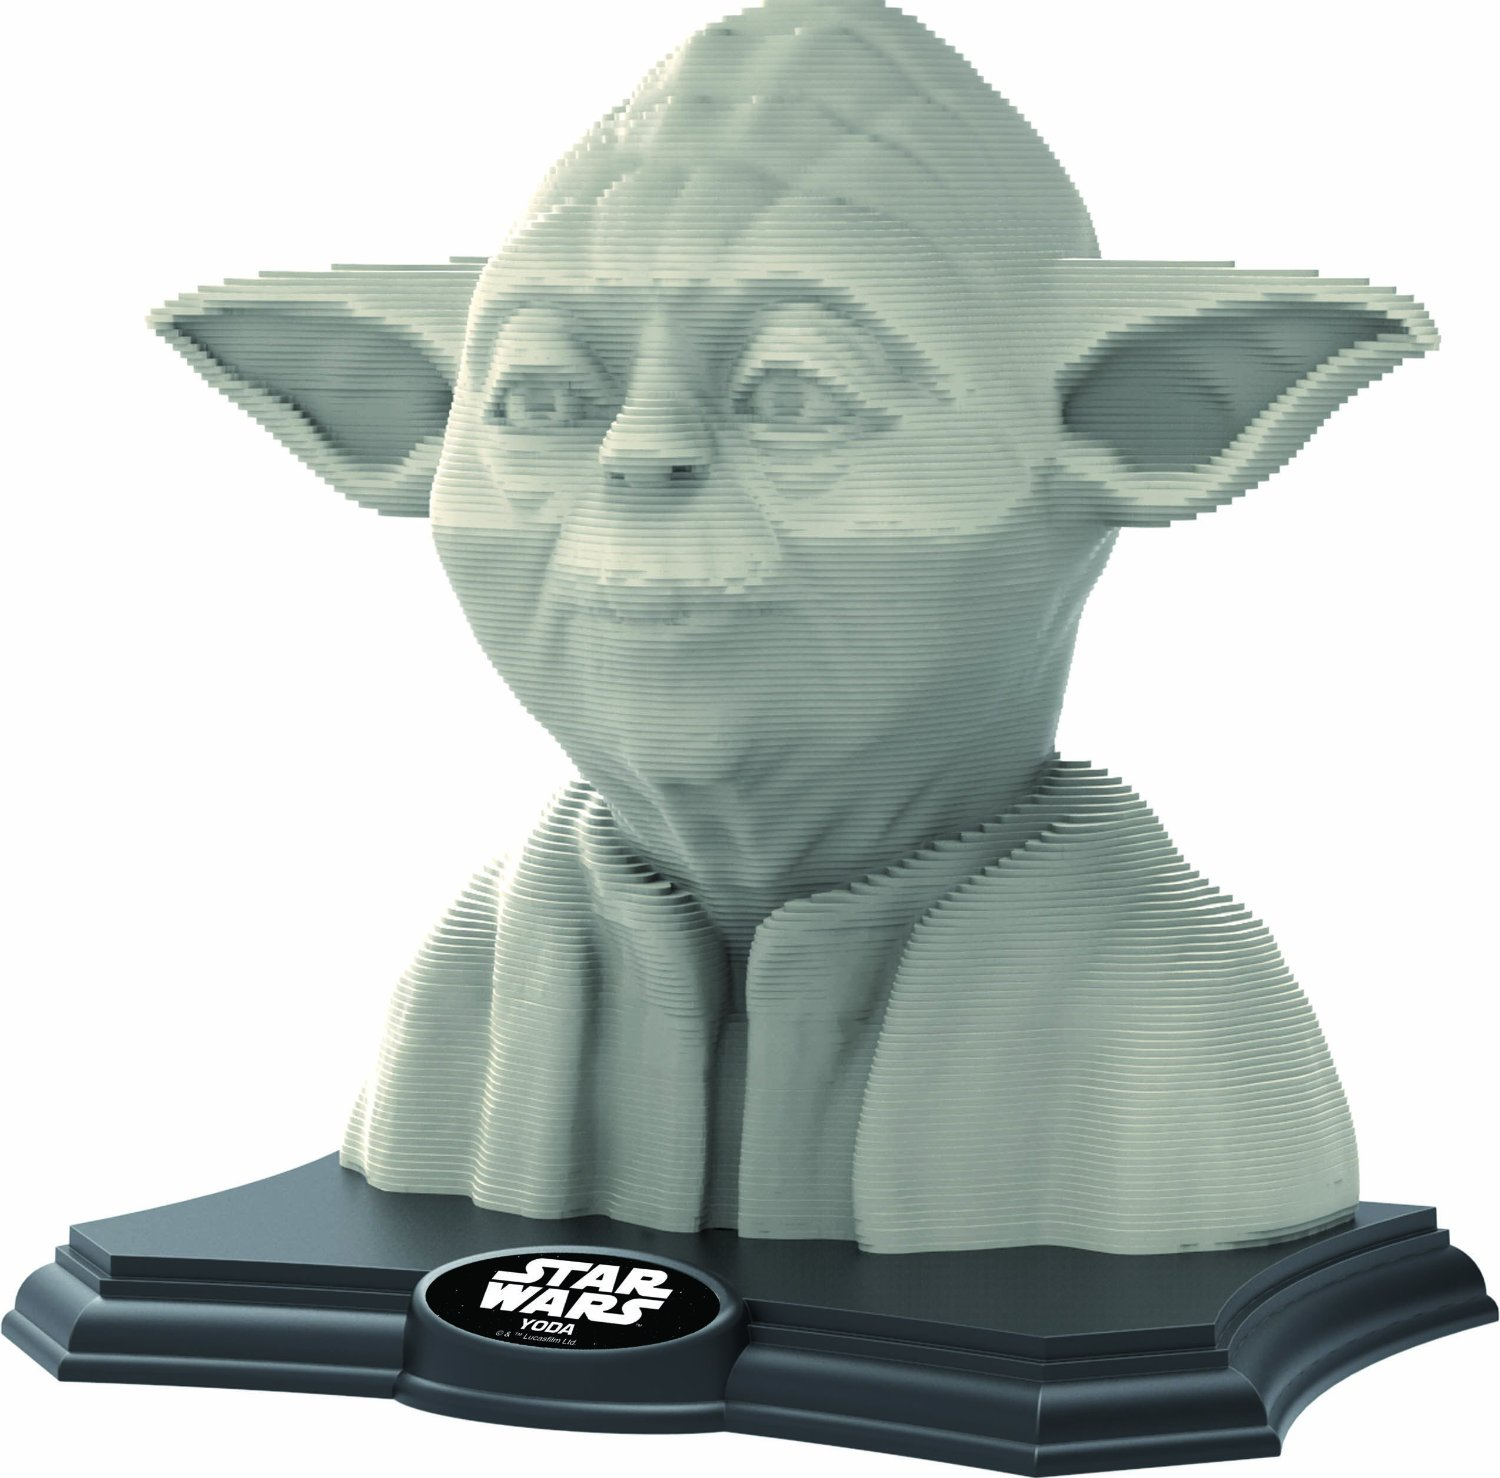 3D Sculpture Puzzle - Star Wars - Yoda